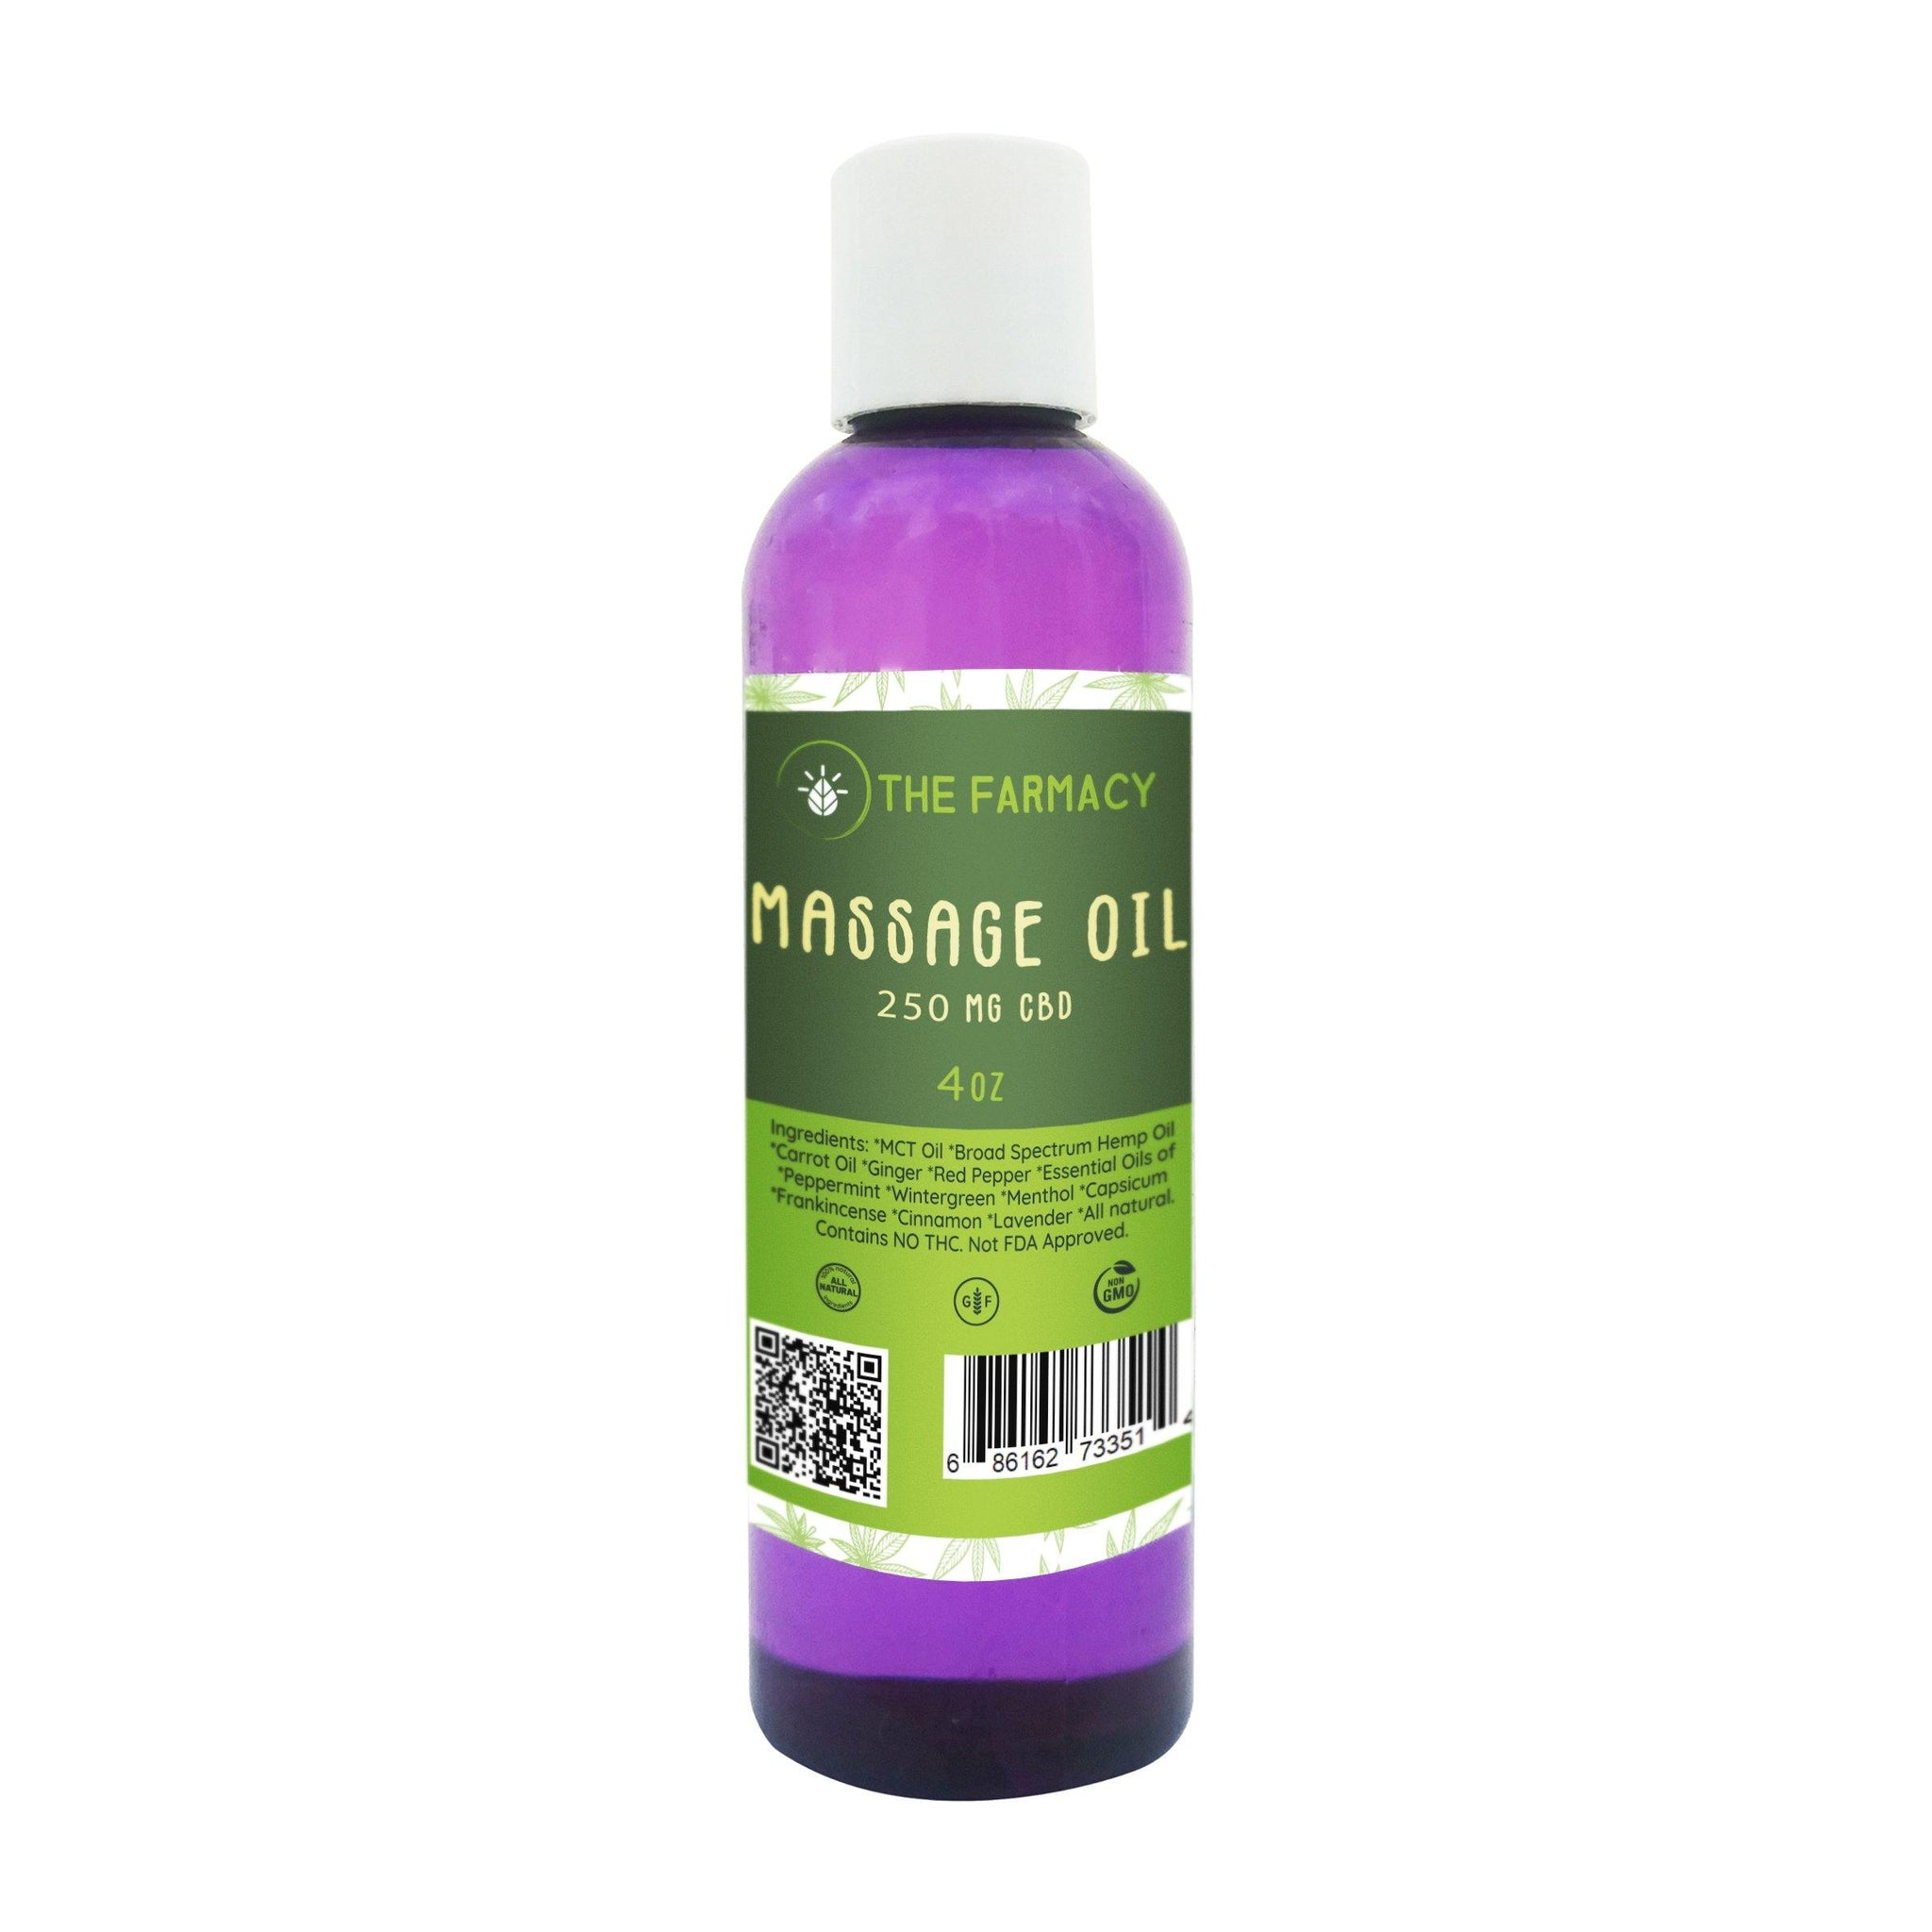 Massage Oil 250mg Broad Spectrum Hemp Oil